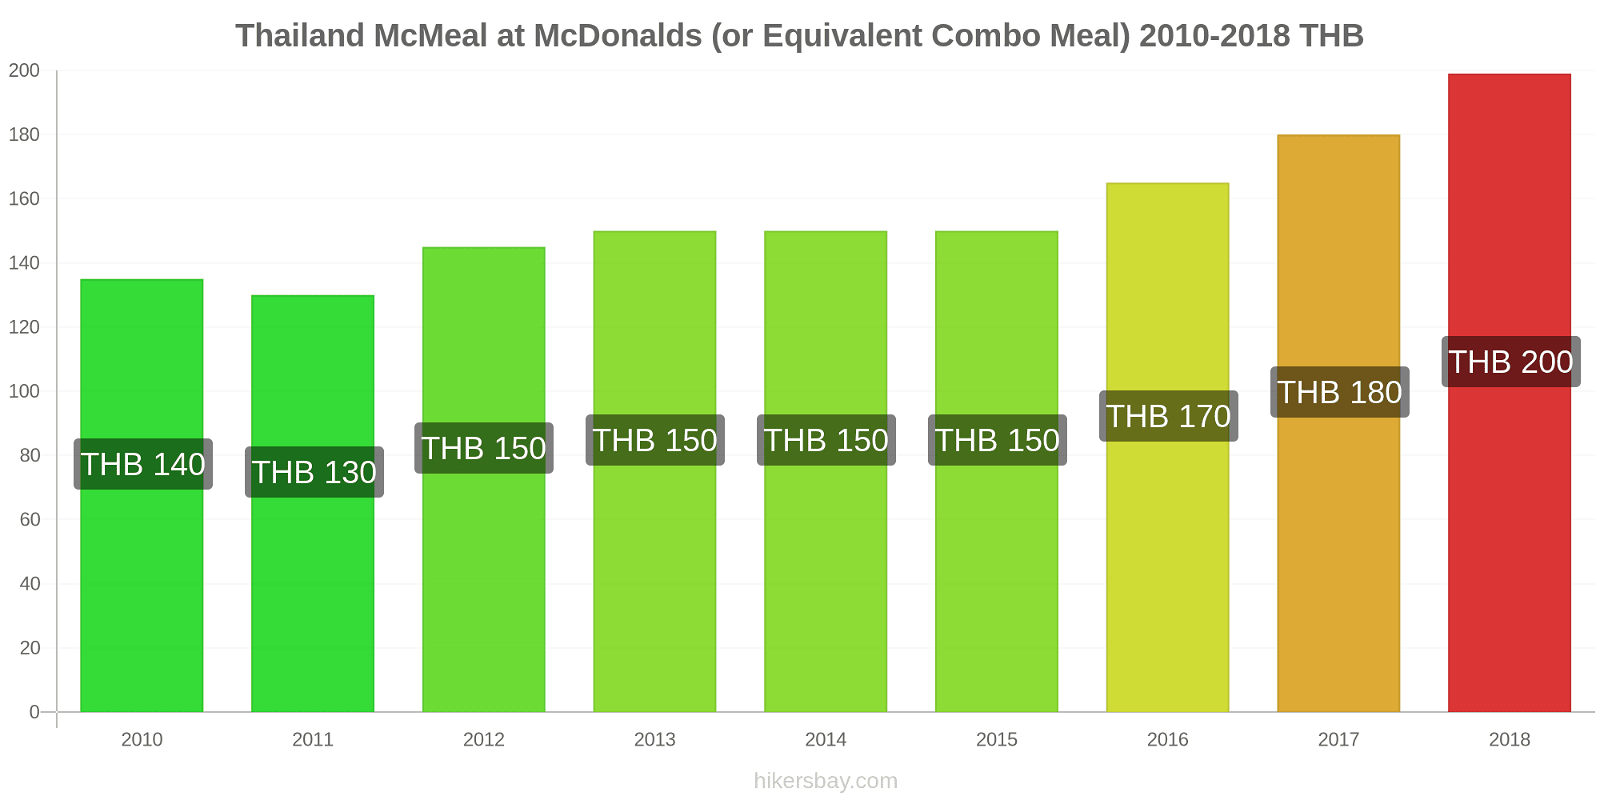 Thailand price changes McMeal at McDonalds (or Equivalent Combo Meal) hikersbay.com